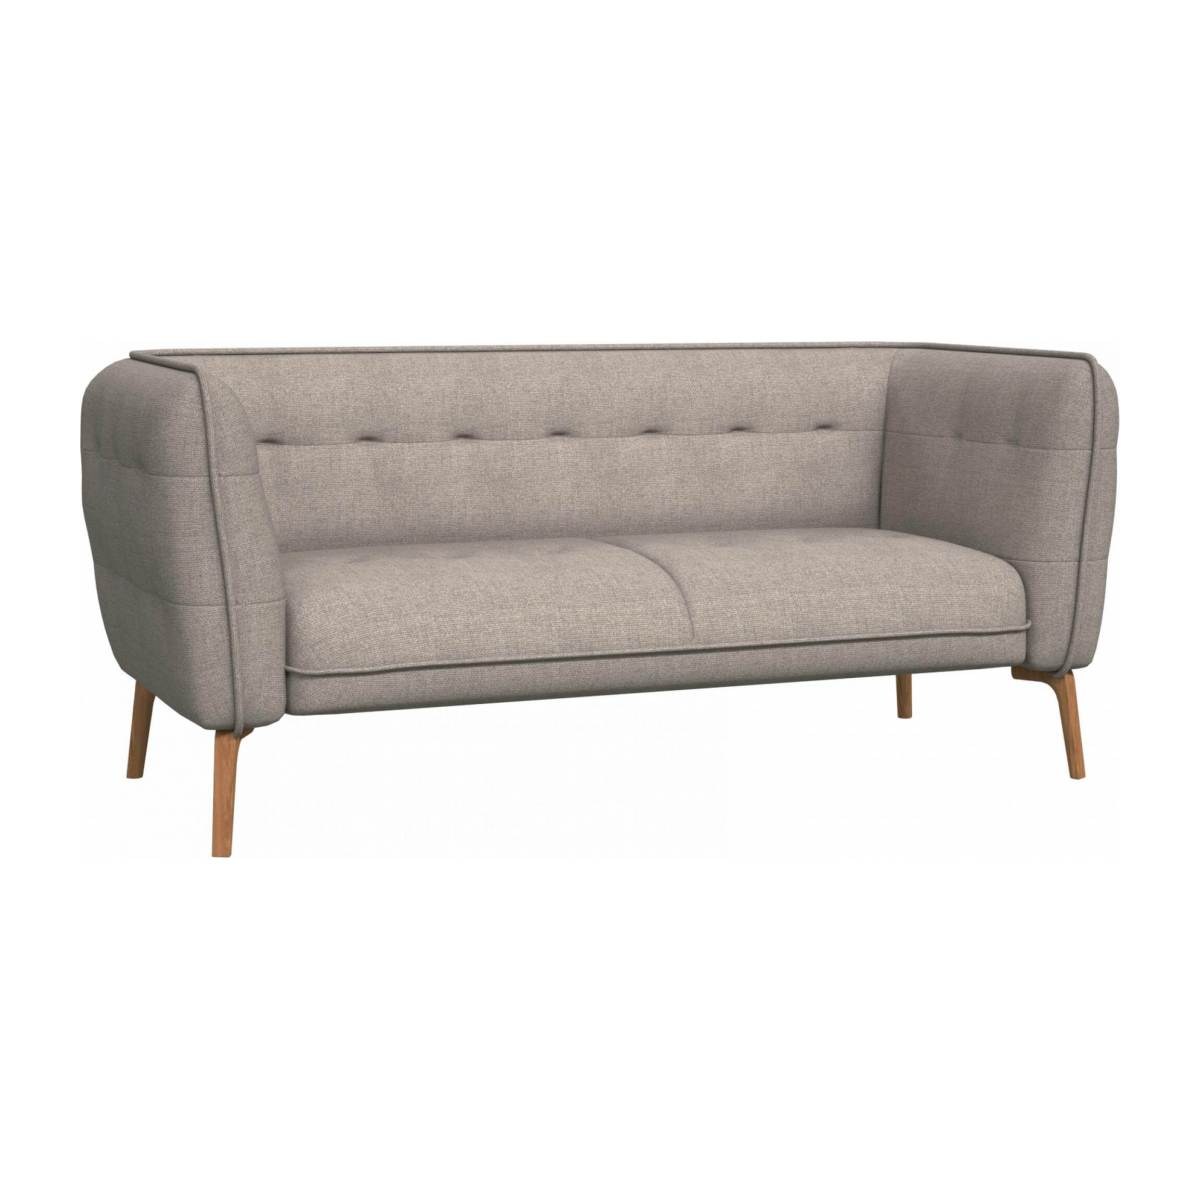 2 seater sofa in Lecce fabric, nature and natural oak feet n°1